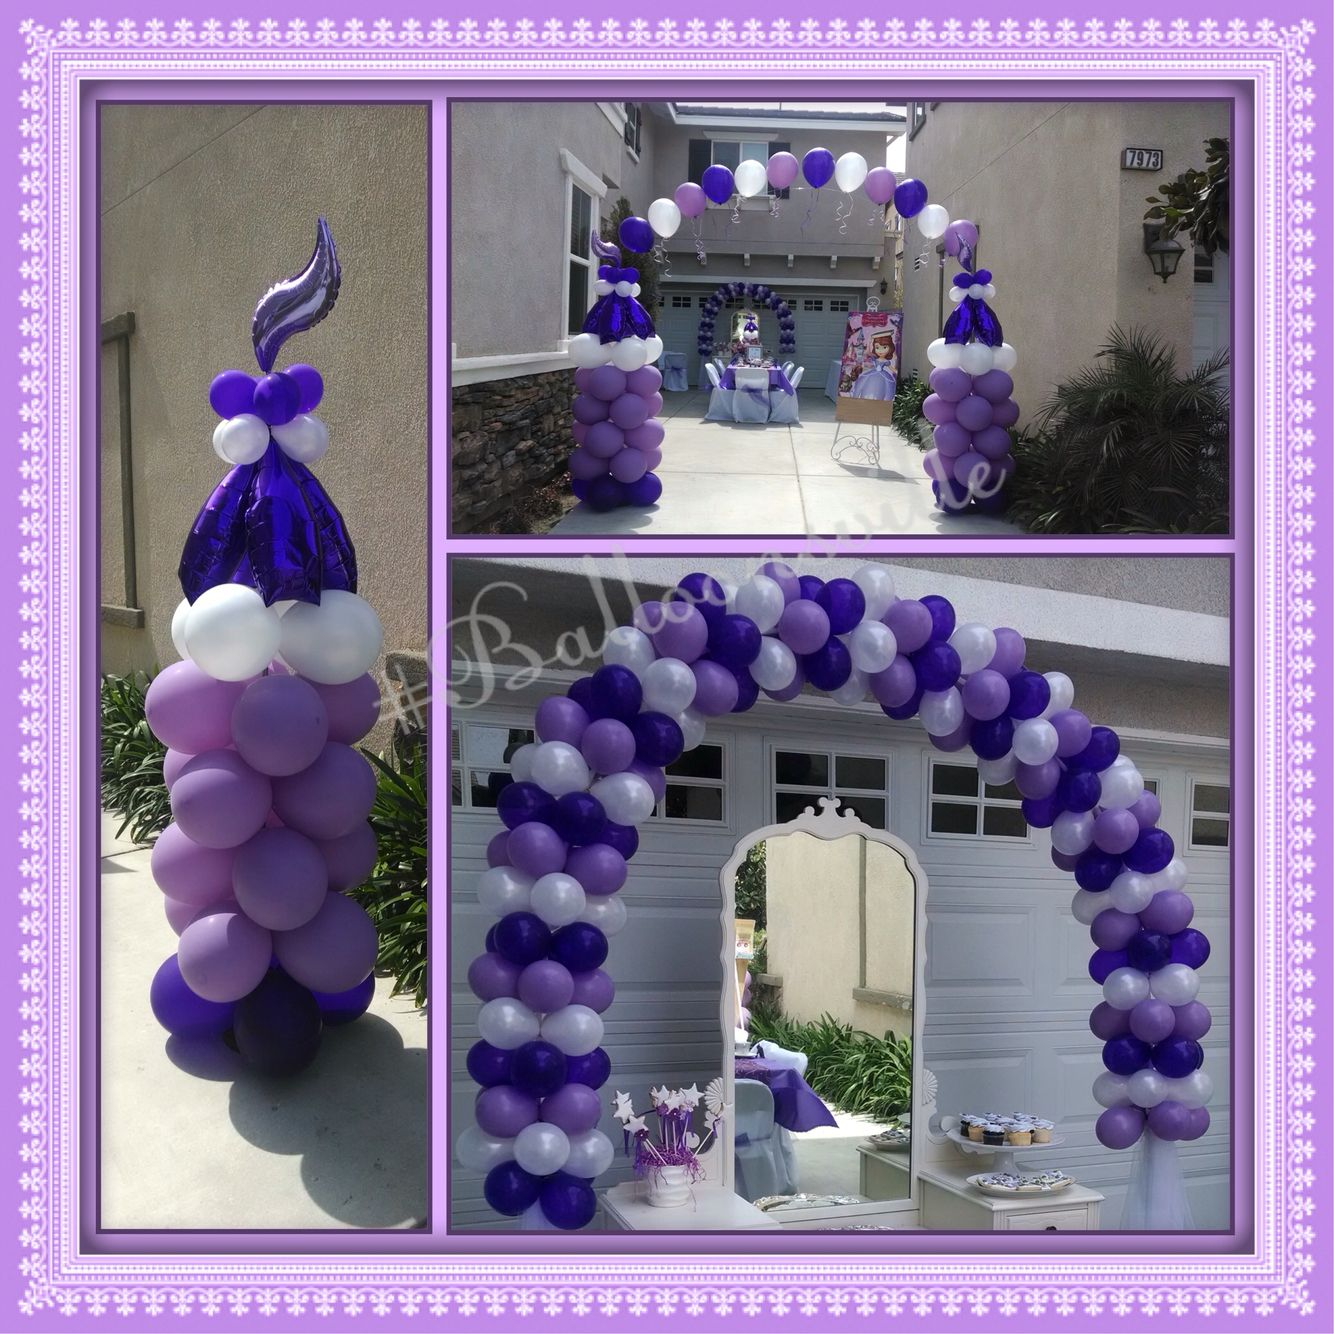 sofia the 1st theme balloon decor. lavender, purple, white balloon